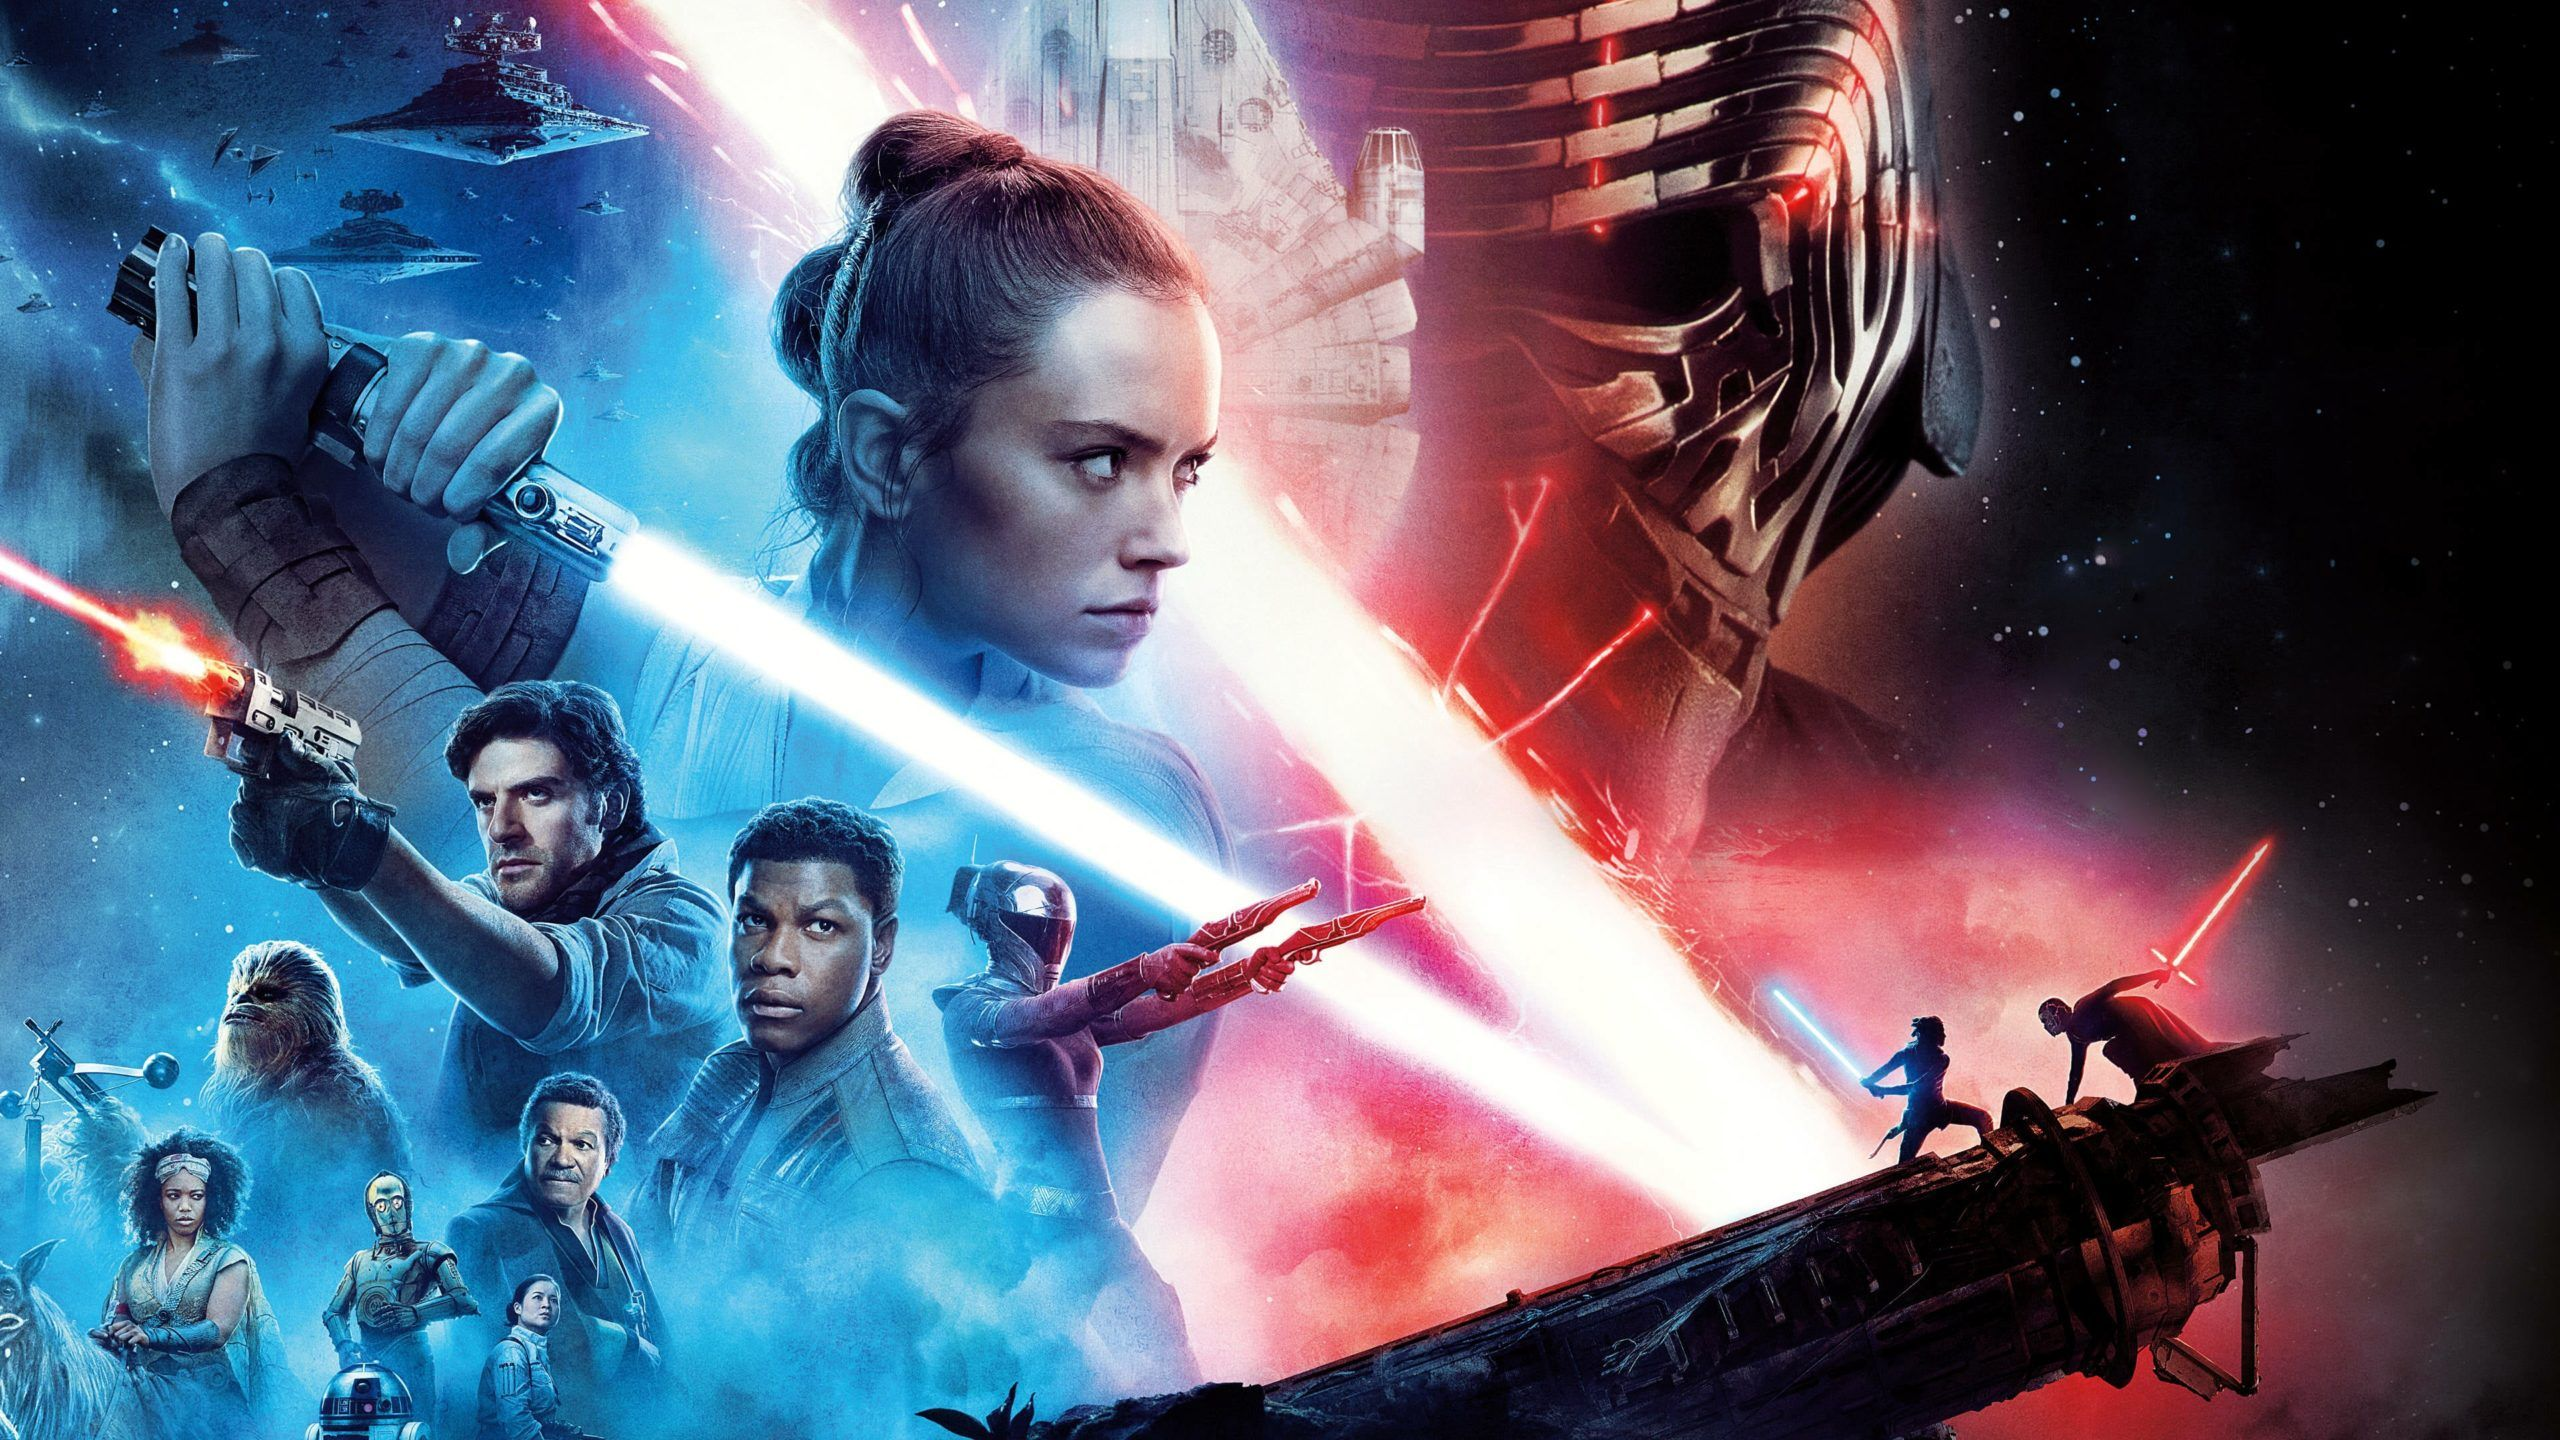 Watch Star Wars The Rise Of Skywalker For Free With This Disney Plus Trial In 2020 Star Wars Watch Free Movies Online Full Movies Online Free